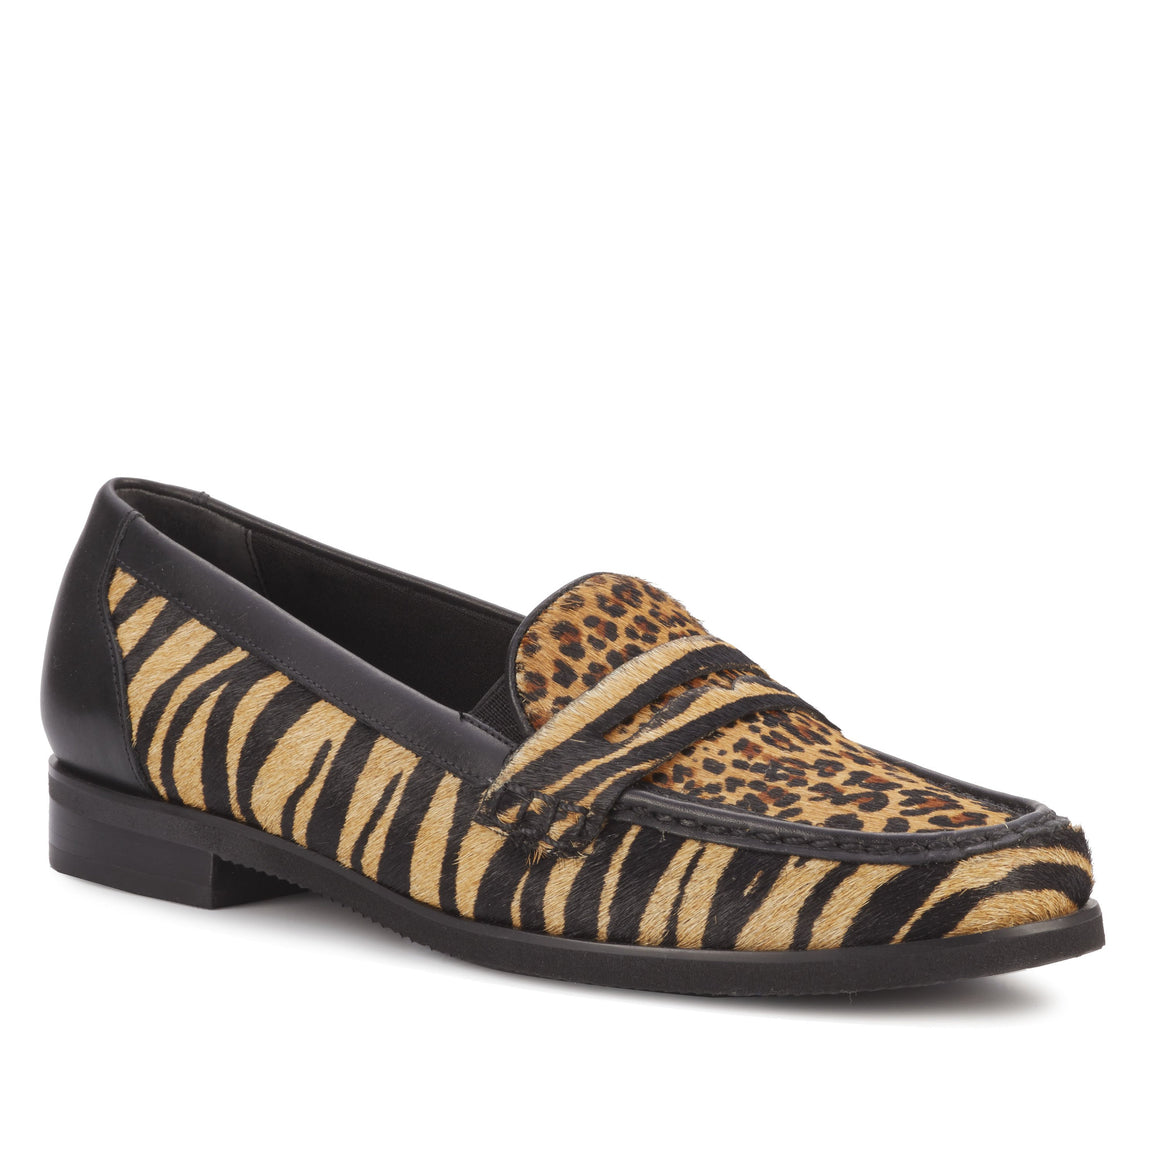 Winnie: Tan Zebra Calf Hair/Mini Cheetah/Black Leather NEW